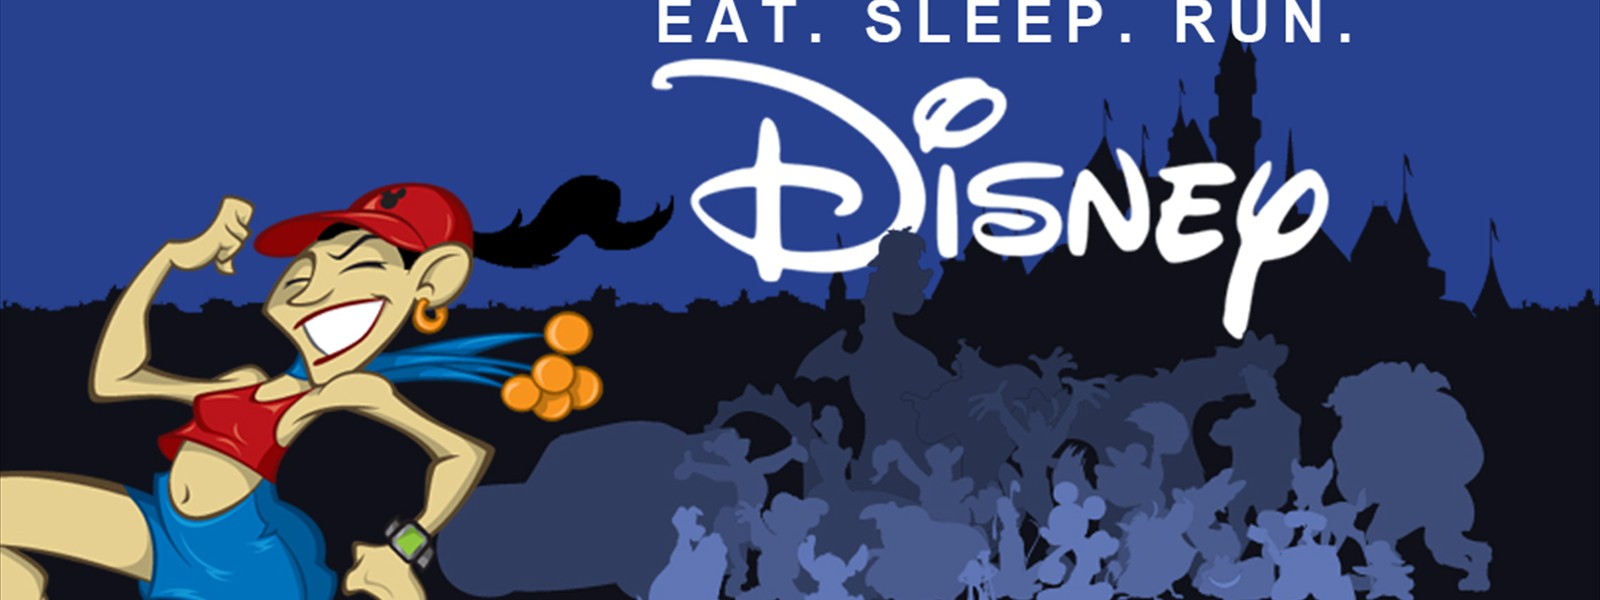 eat-sleep-run-disney-header